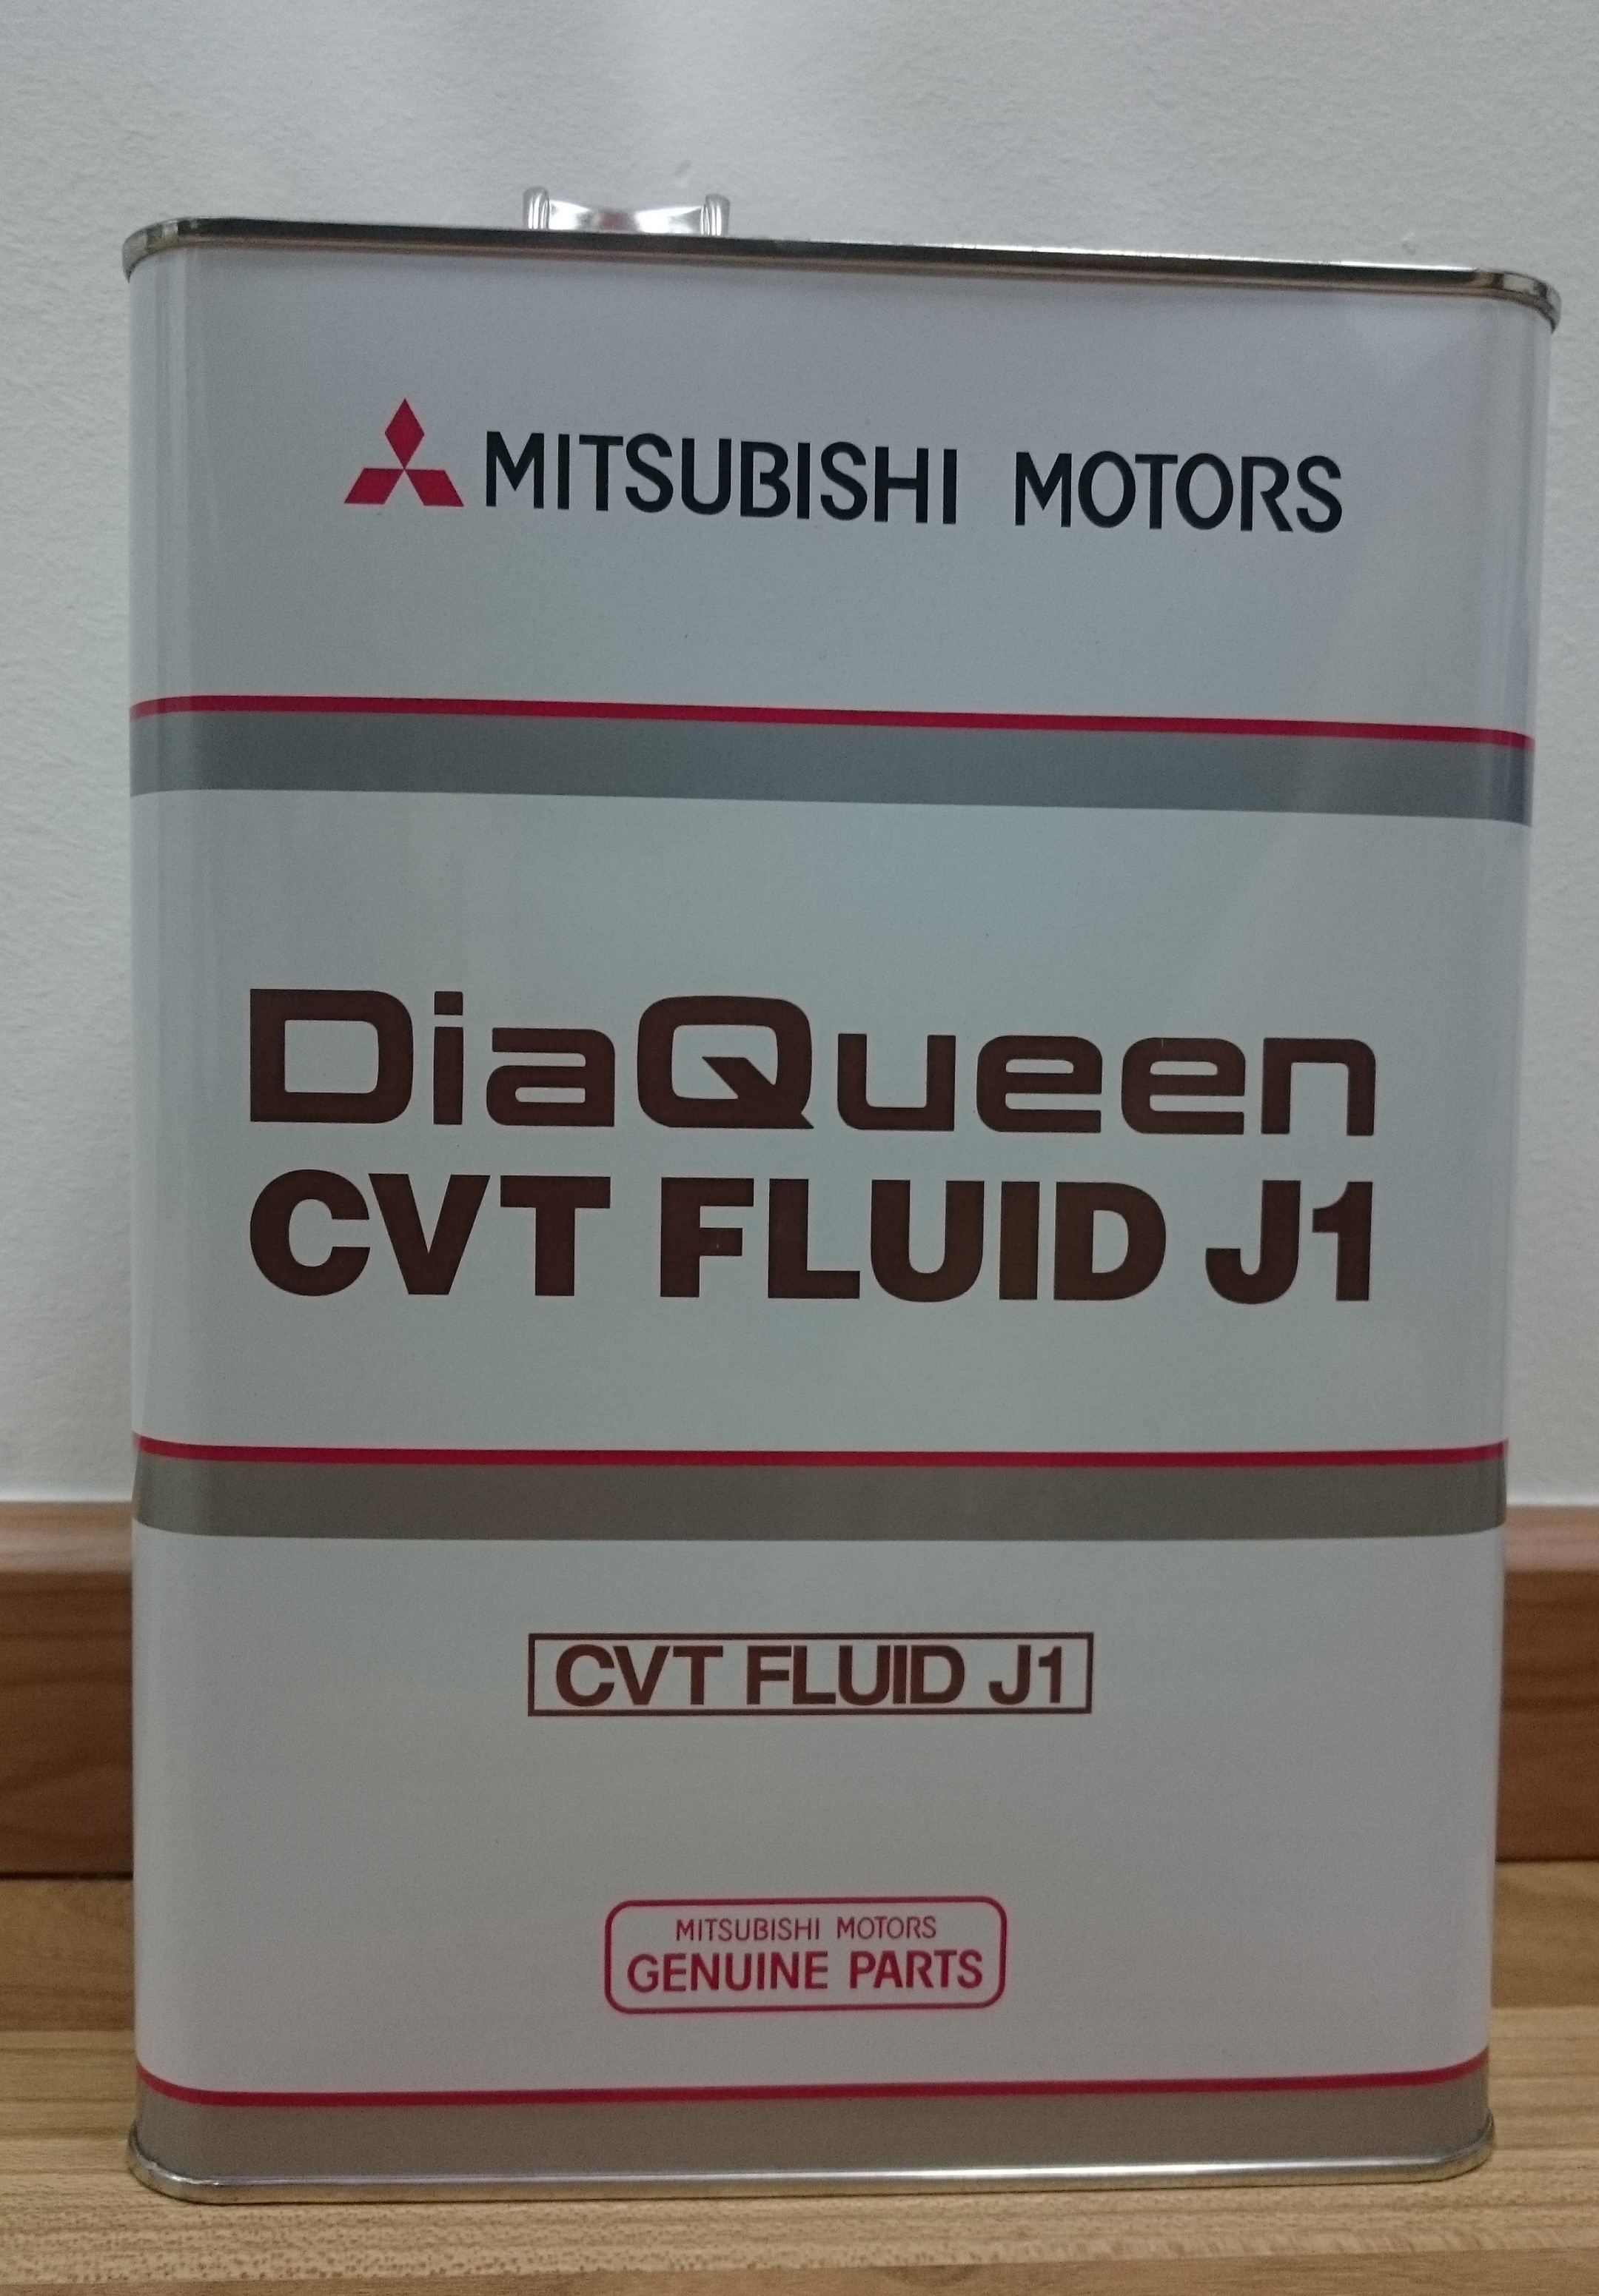 Mitsubishi motors diaqueen cvt continuous variable transmission fluid j1 4 litre pack